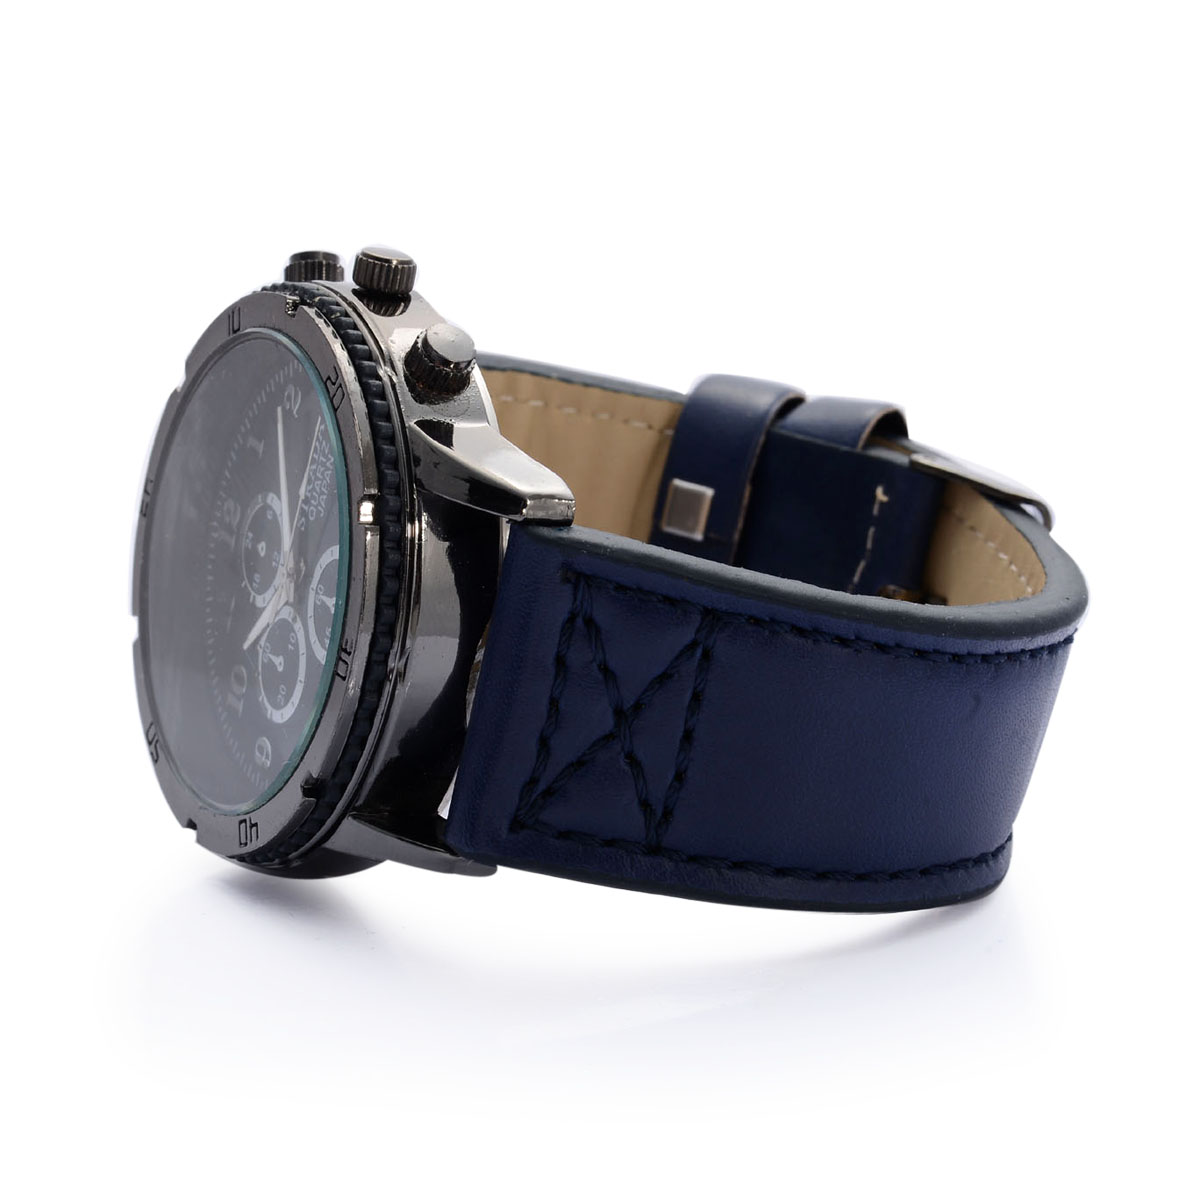 STRADA Japanese Movement Watch with Blue Band and Stainless Steel Back